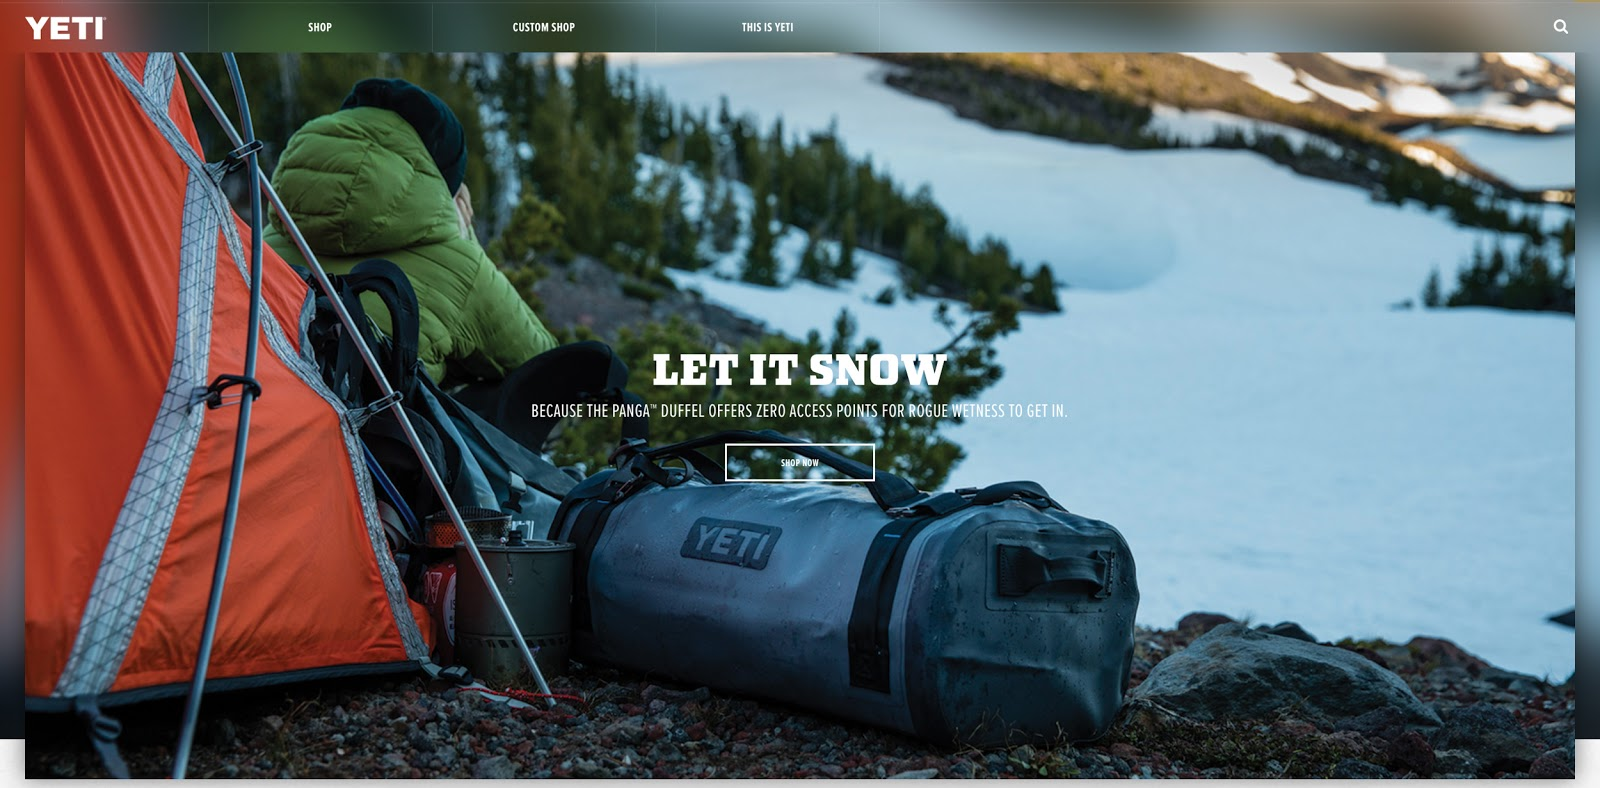 Outdoor Adventure Action Sports Active Lifestyle Photographer Tyler Roemer Photography News Blog